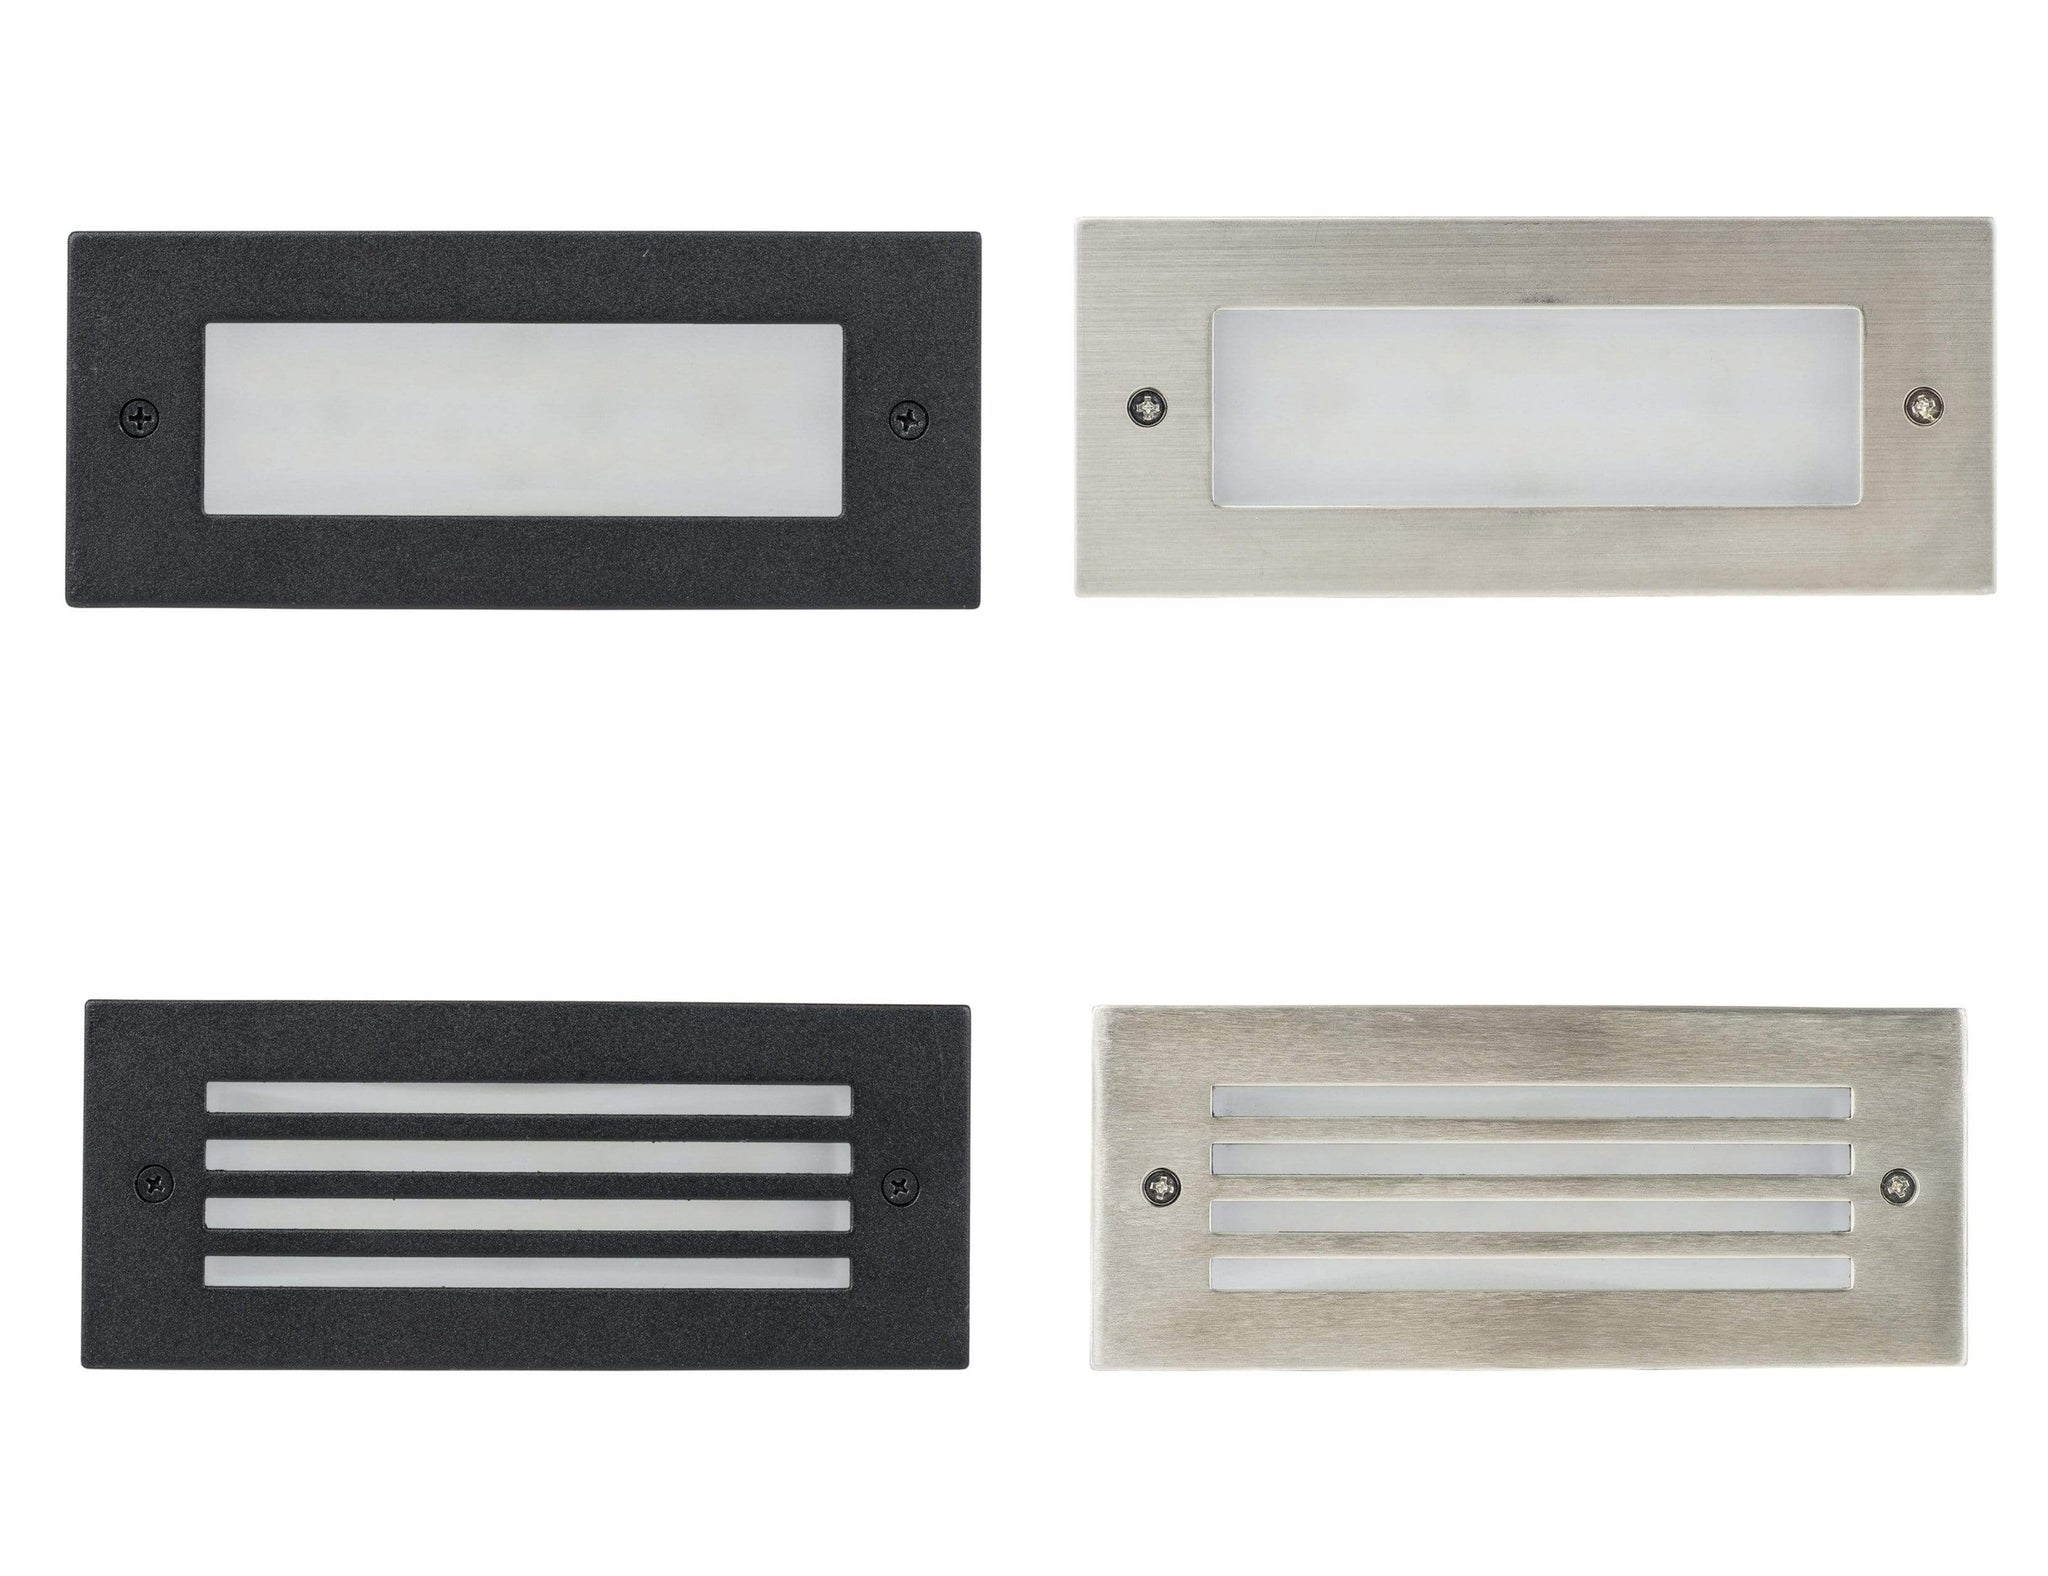 Step Light BATA - 6W LED Brick Light lighting shops lighting stores LED lights  lighting designer